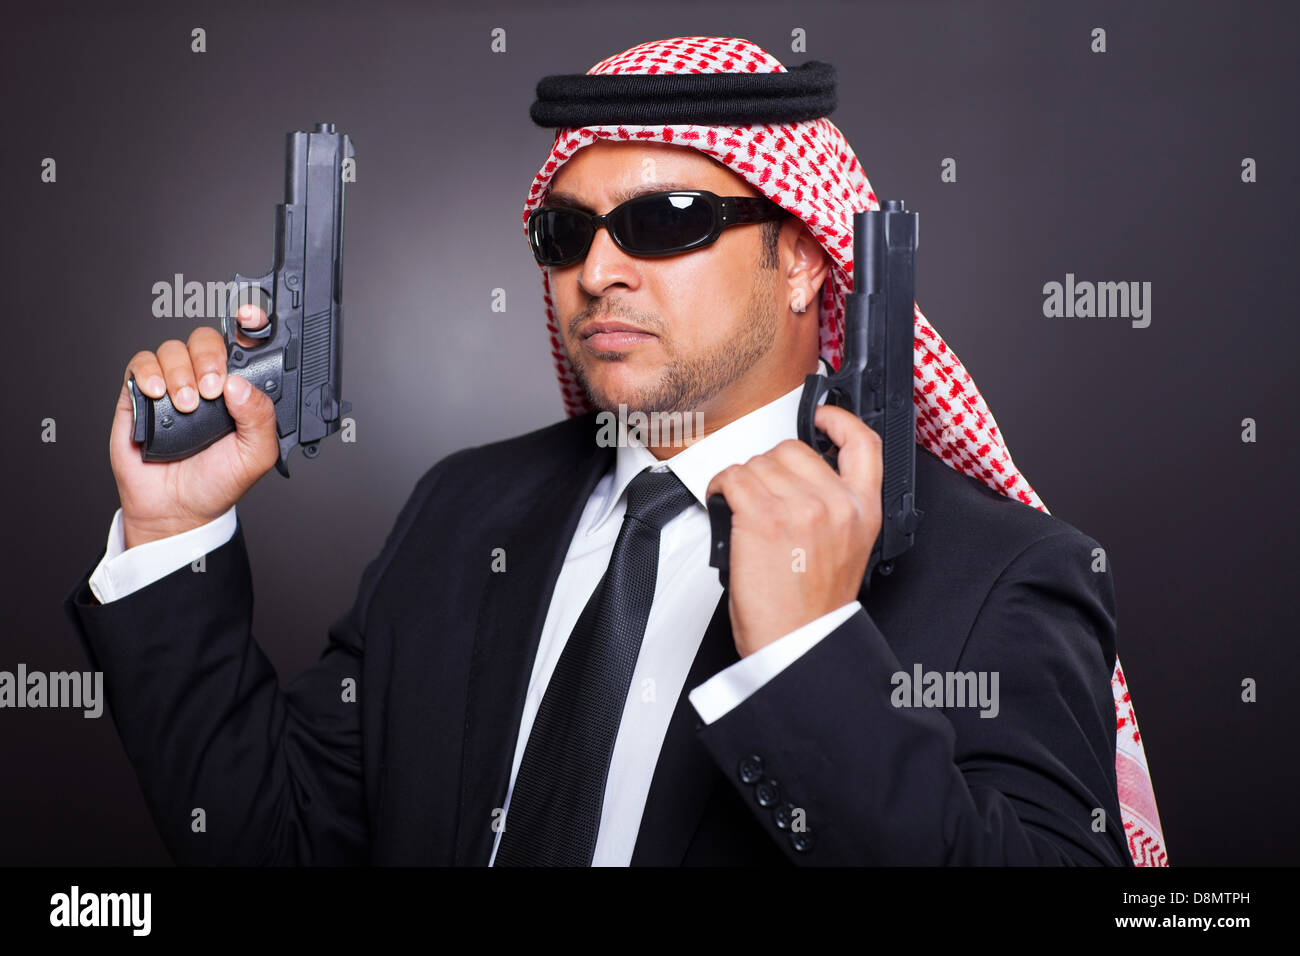 Young Middle Eastern Hitman Posing With Guns Over Black Background Stock Photo Alamy